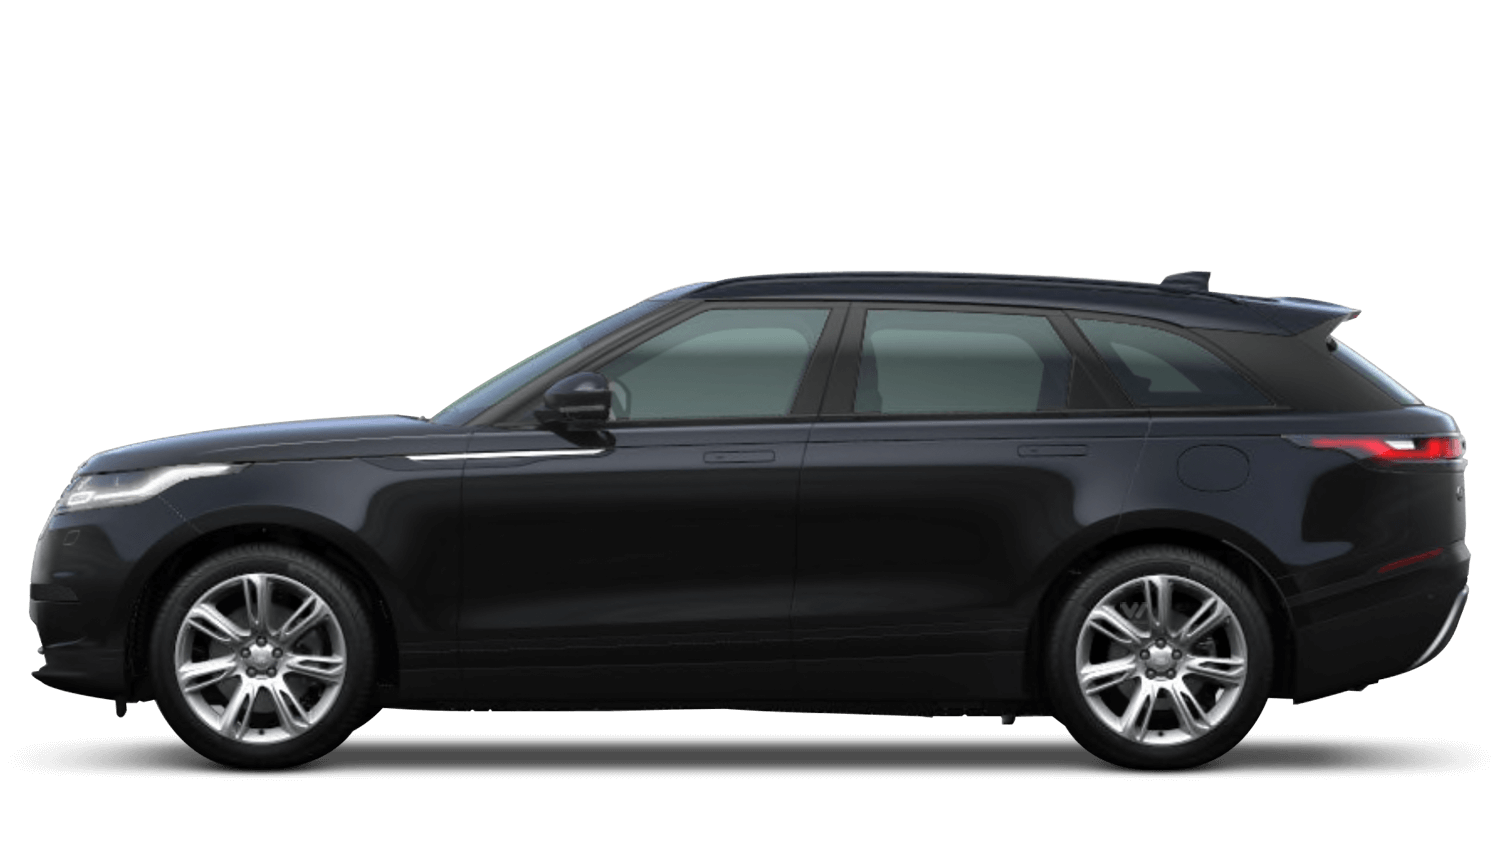 Land Rover Range Rover Velar Business Offers